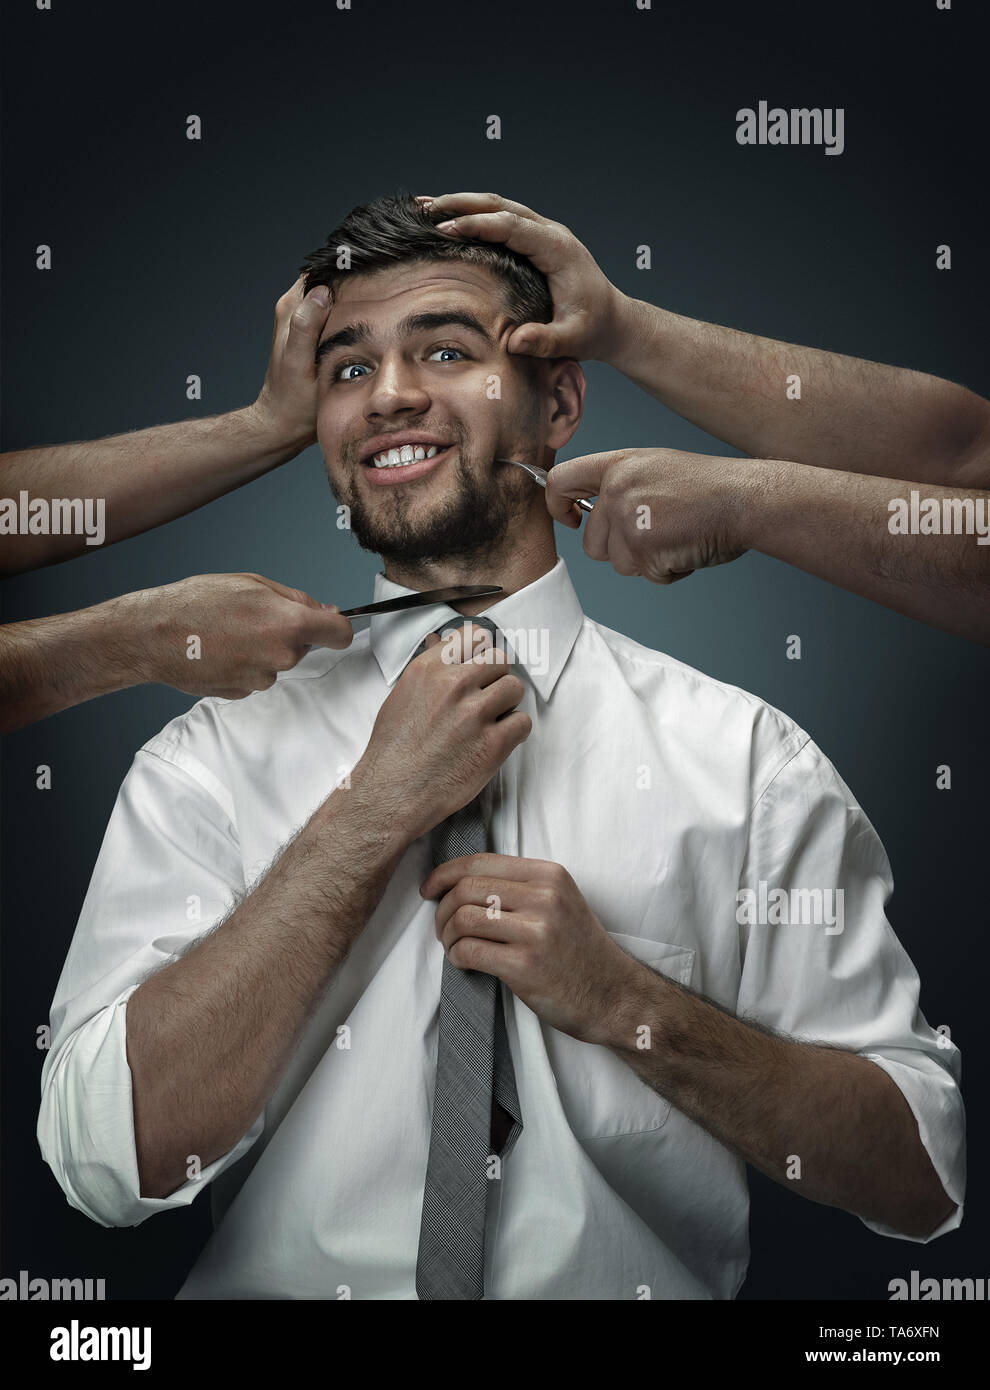 A male model surrounded by hands like his own thoughts on dark background. A young man doubts, is under the pressure of life situations. Concept of me - Stock Image